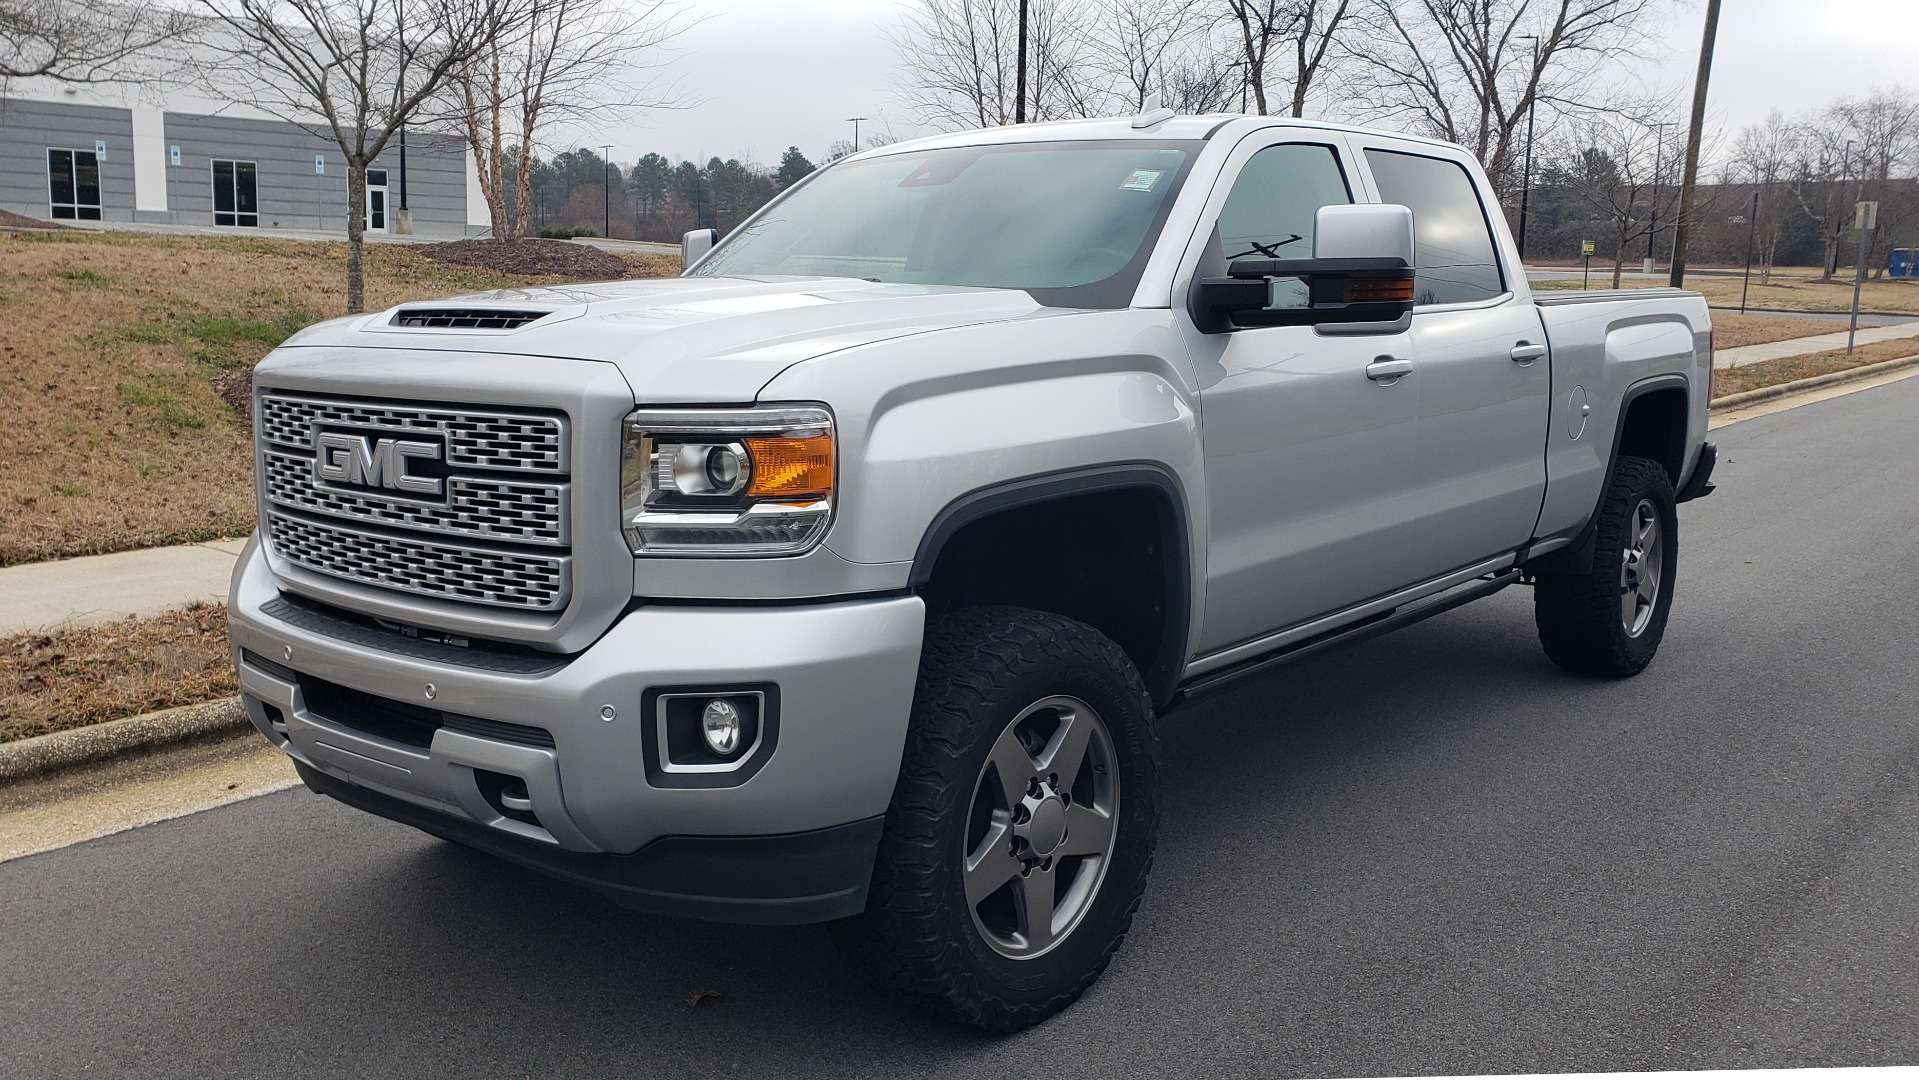 Used 2018 GMC SIERRA 2500HD DENALI 4X4 CREWCAB / 6.6L DURAMAX PLUS / NAV / SUNROOF / REARVIEW for sale $61,999 at Formula Imports in Charlotte NC 28227 1